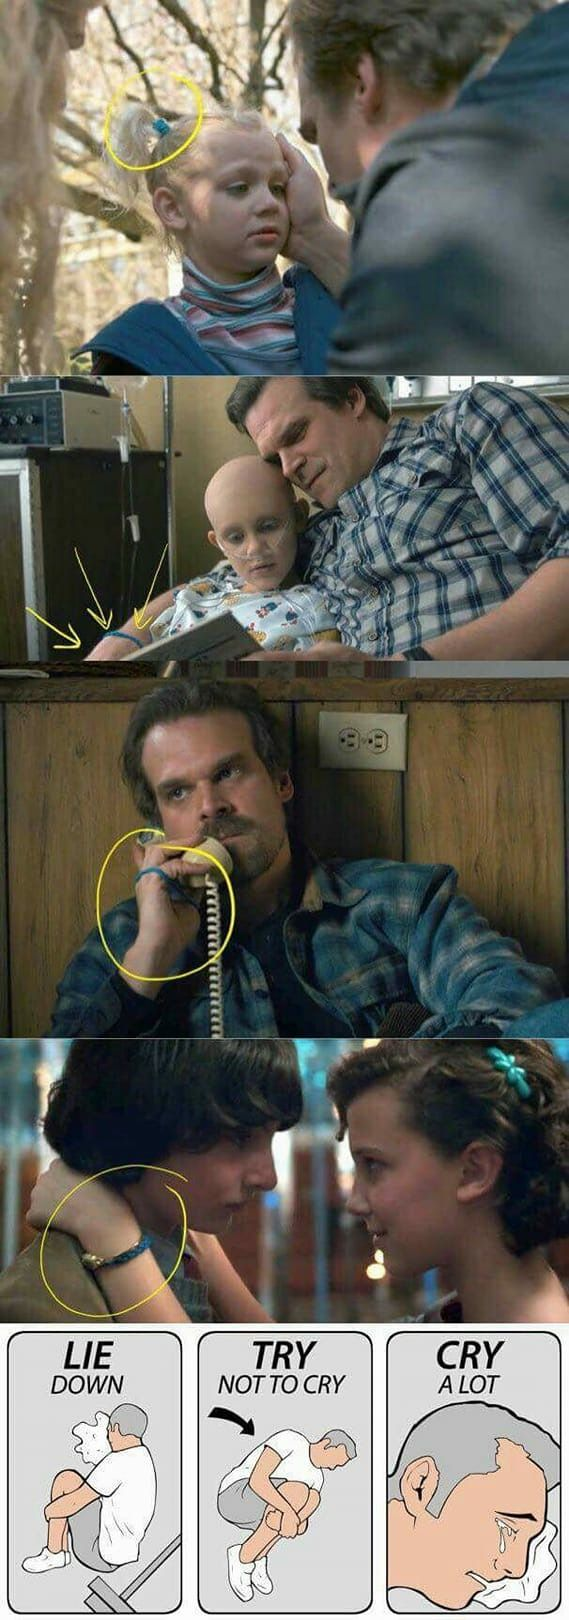 Hopper wears it a lot in both seasons. Besides on El' s wrist at the snowball, it was on Hopper's wrist when he radioed El to apologize and tell her he will be home soon. It's so cute that he gave it to El to wear to the snowball